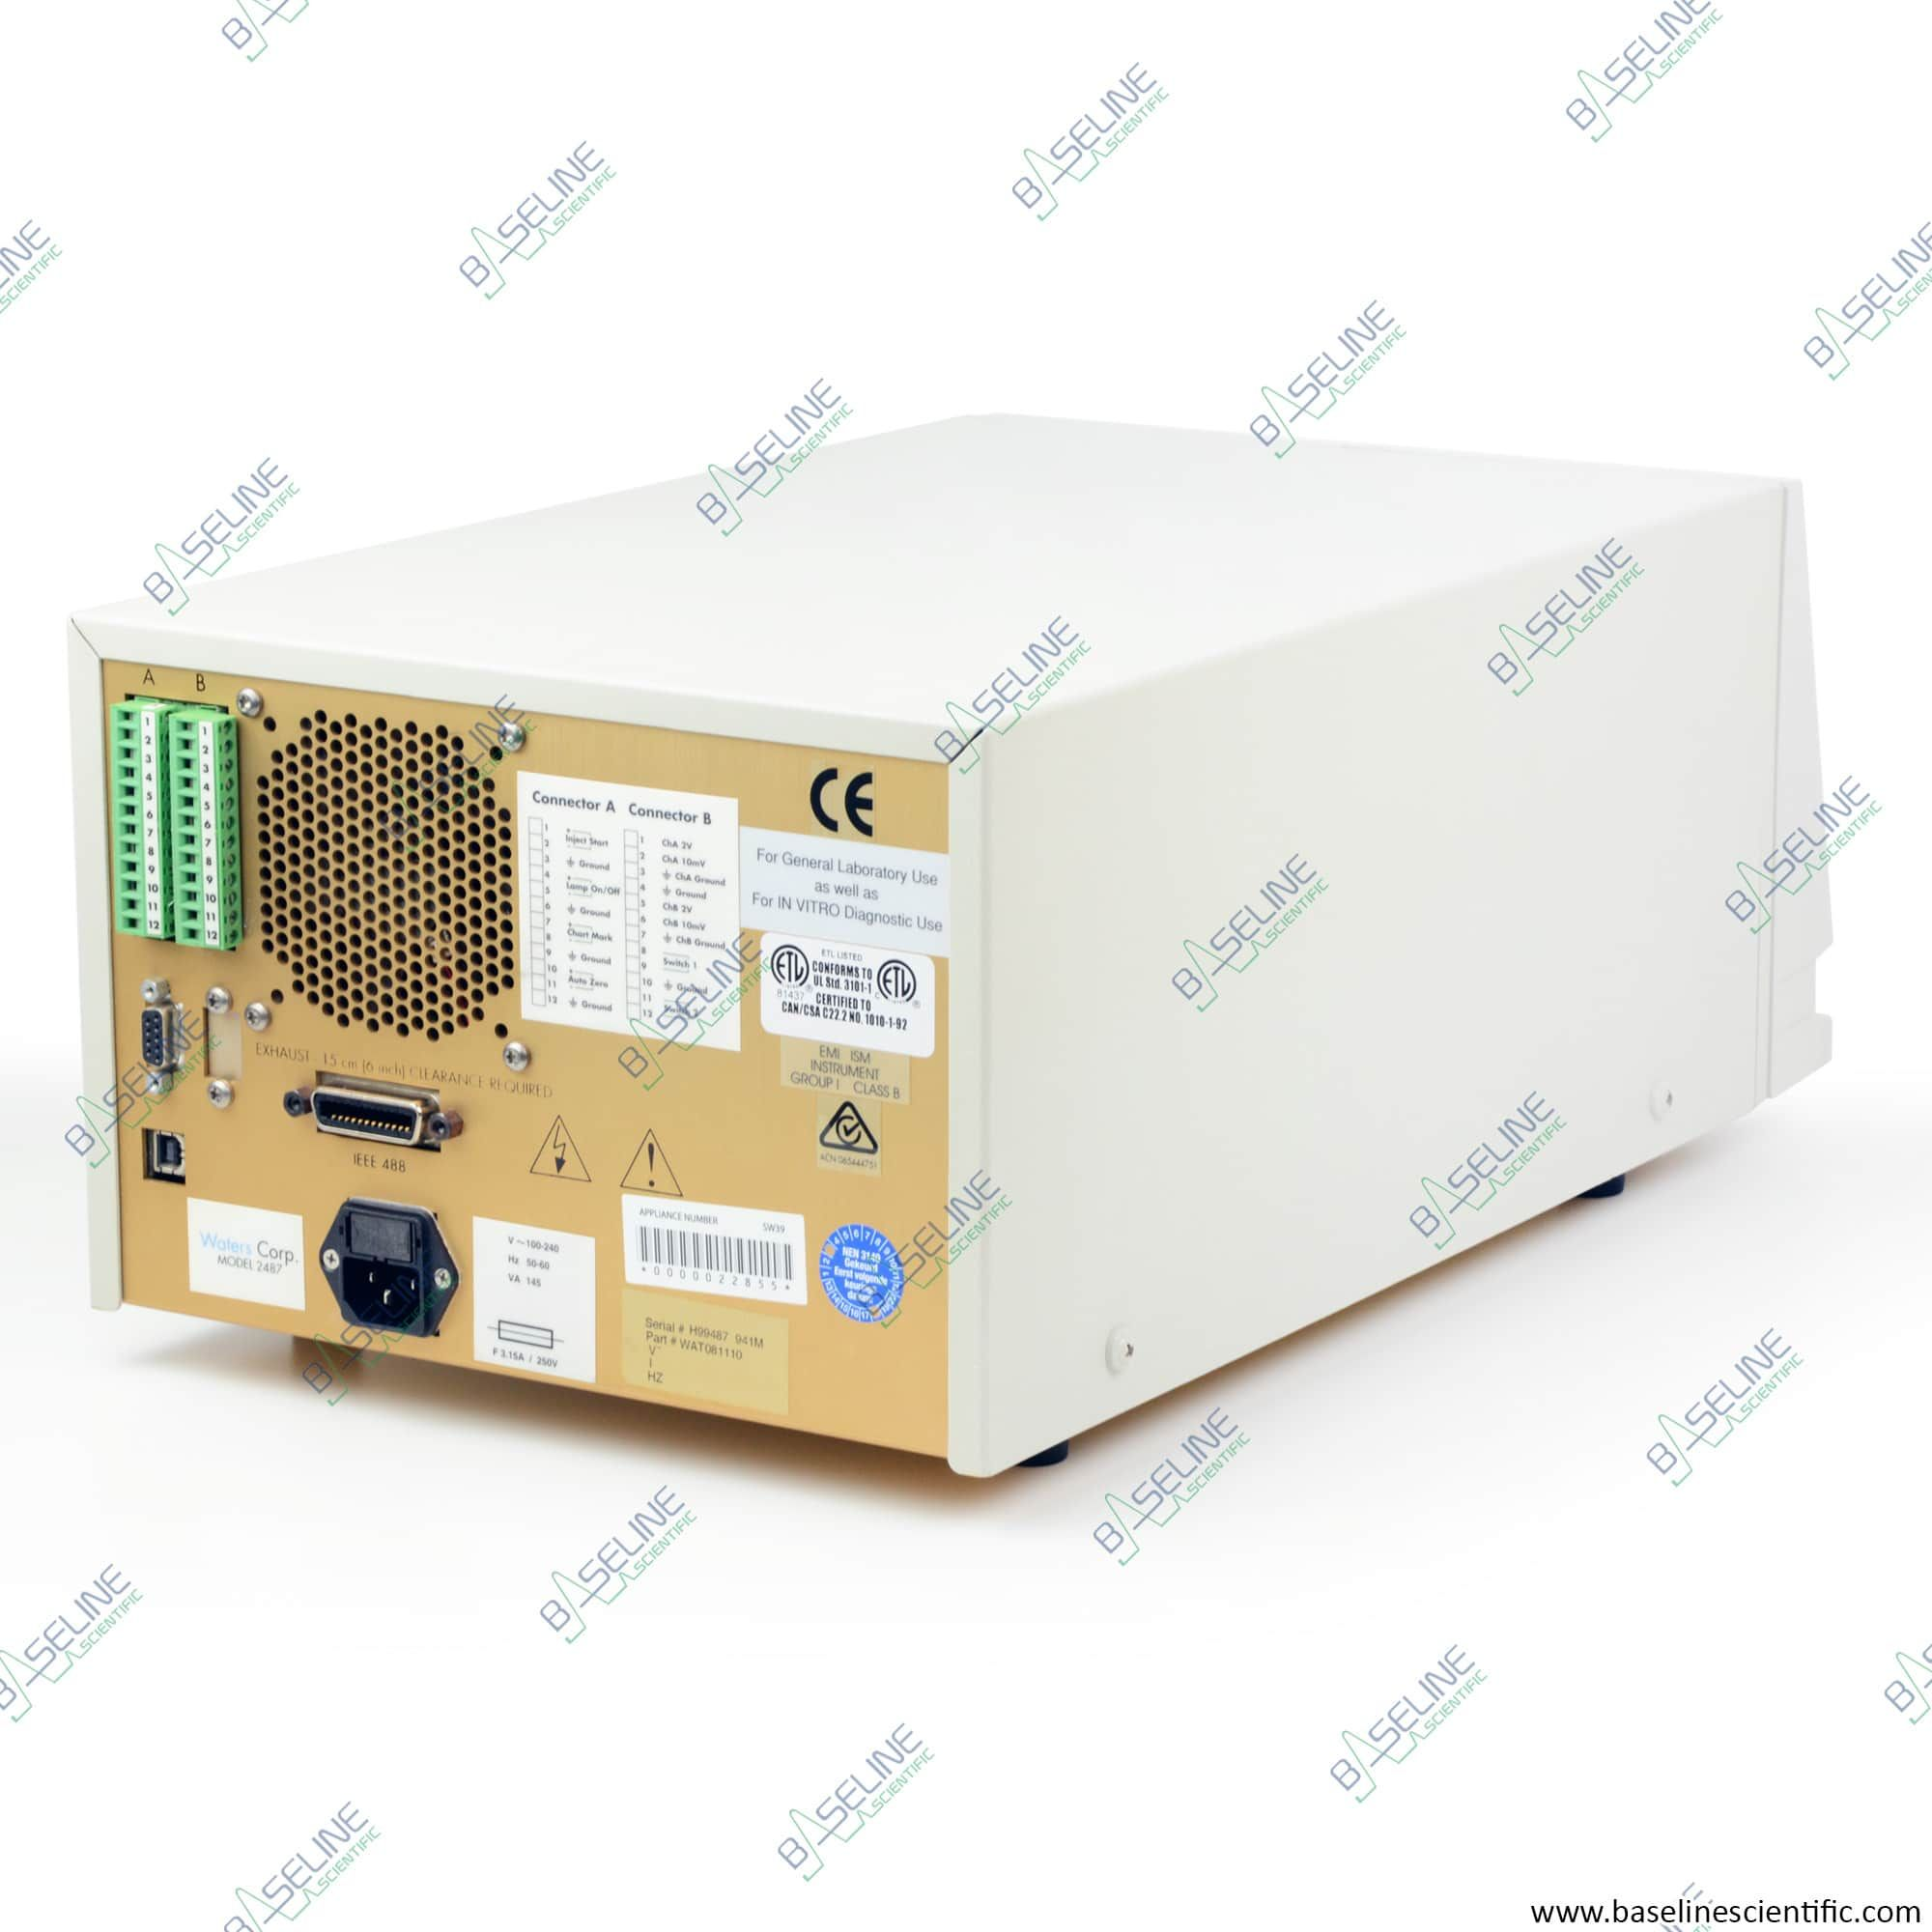 Refurbished Waters Alliance 2695 and 2487 UV Detector with ONE YEAR WARRANTY